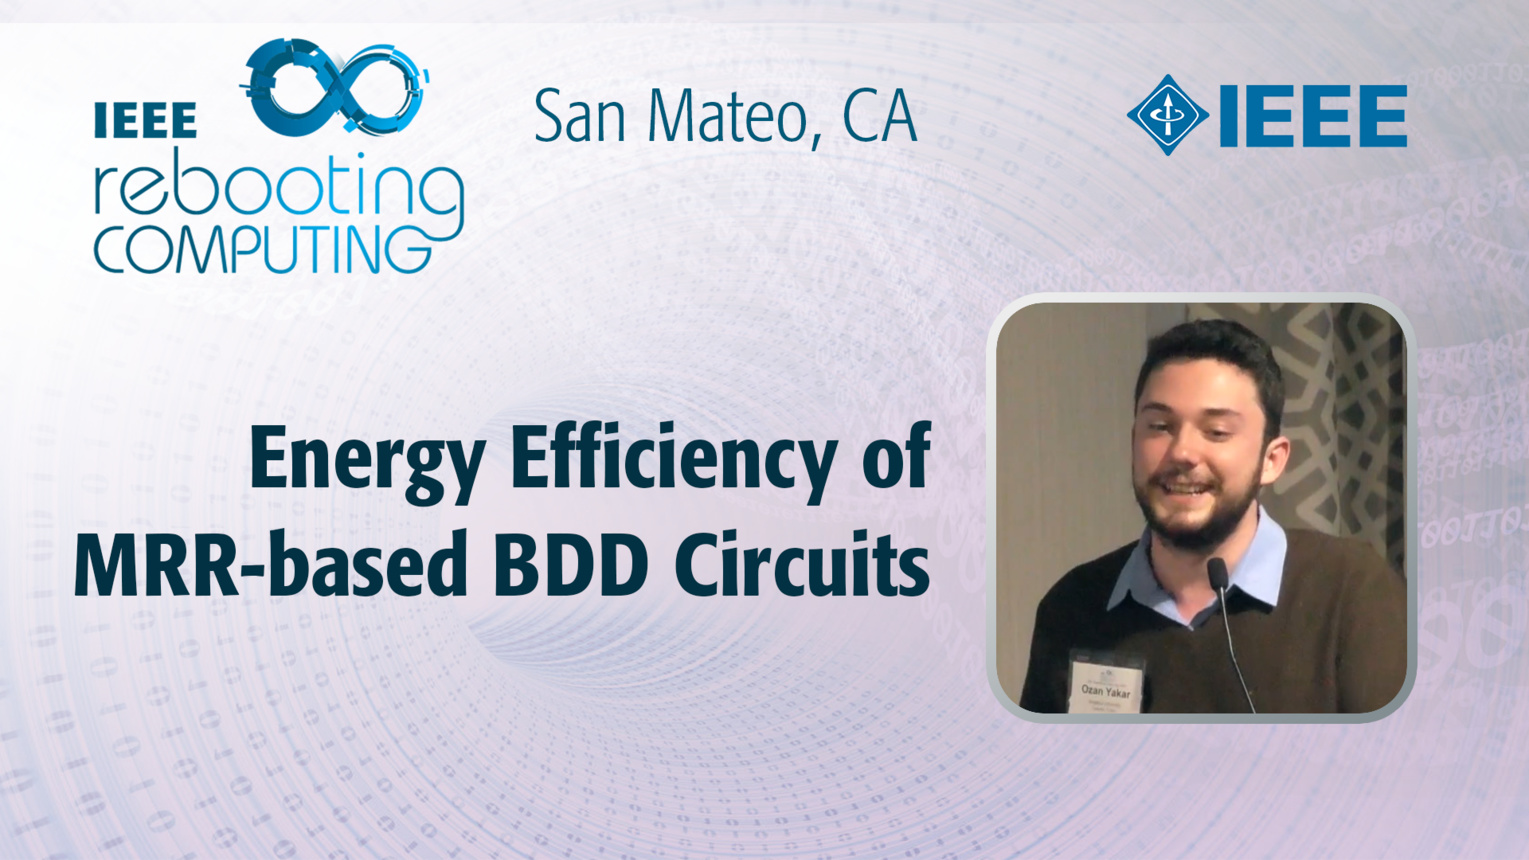 Energy Efficiency of MRR-based BDD Circuits - Ozan Yakar - ICRC San Mateo, 2019